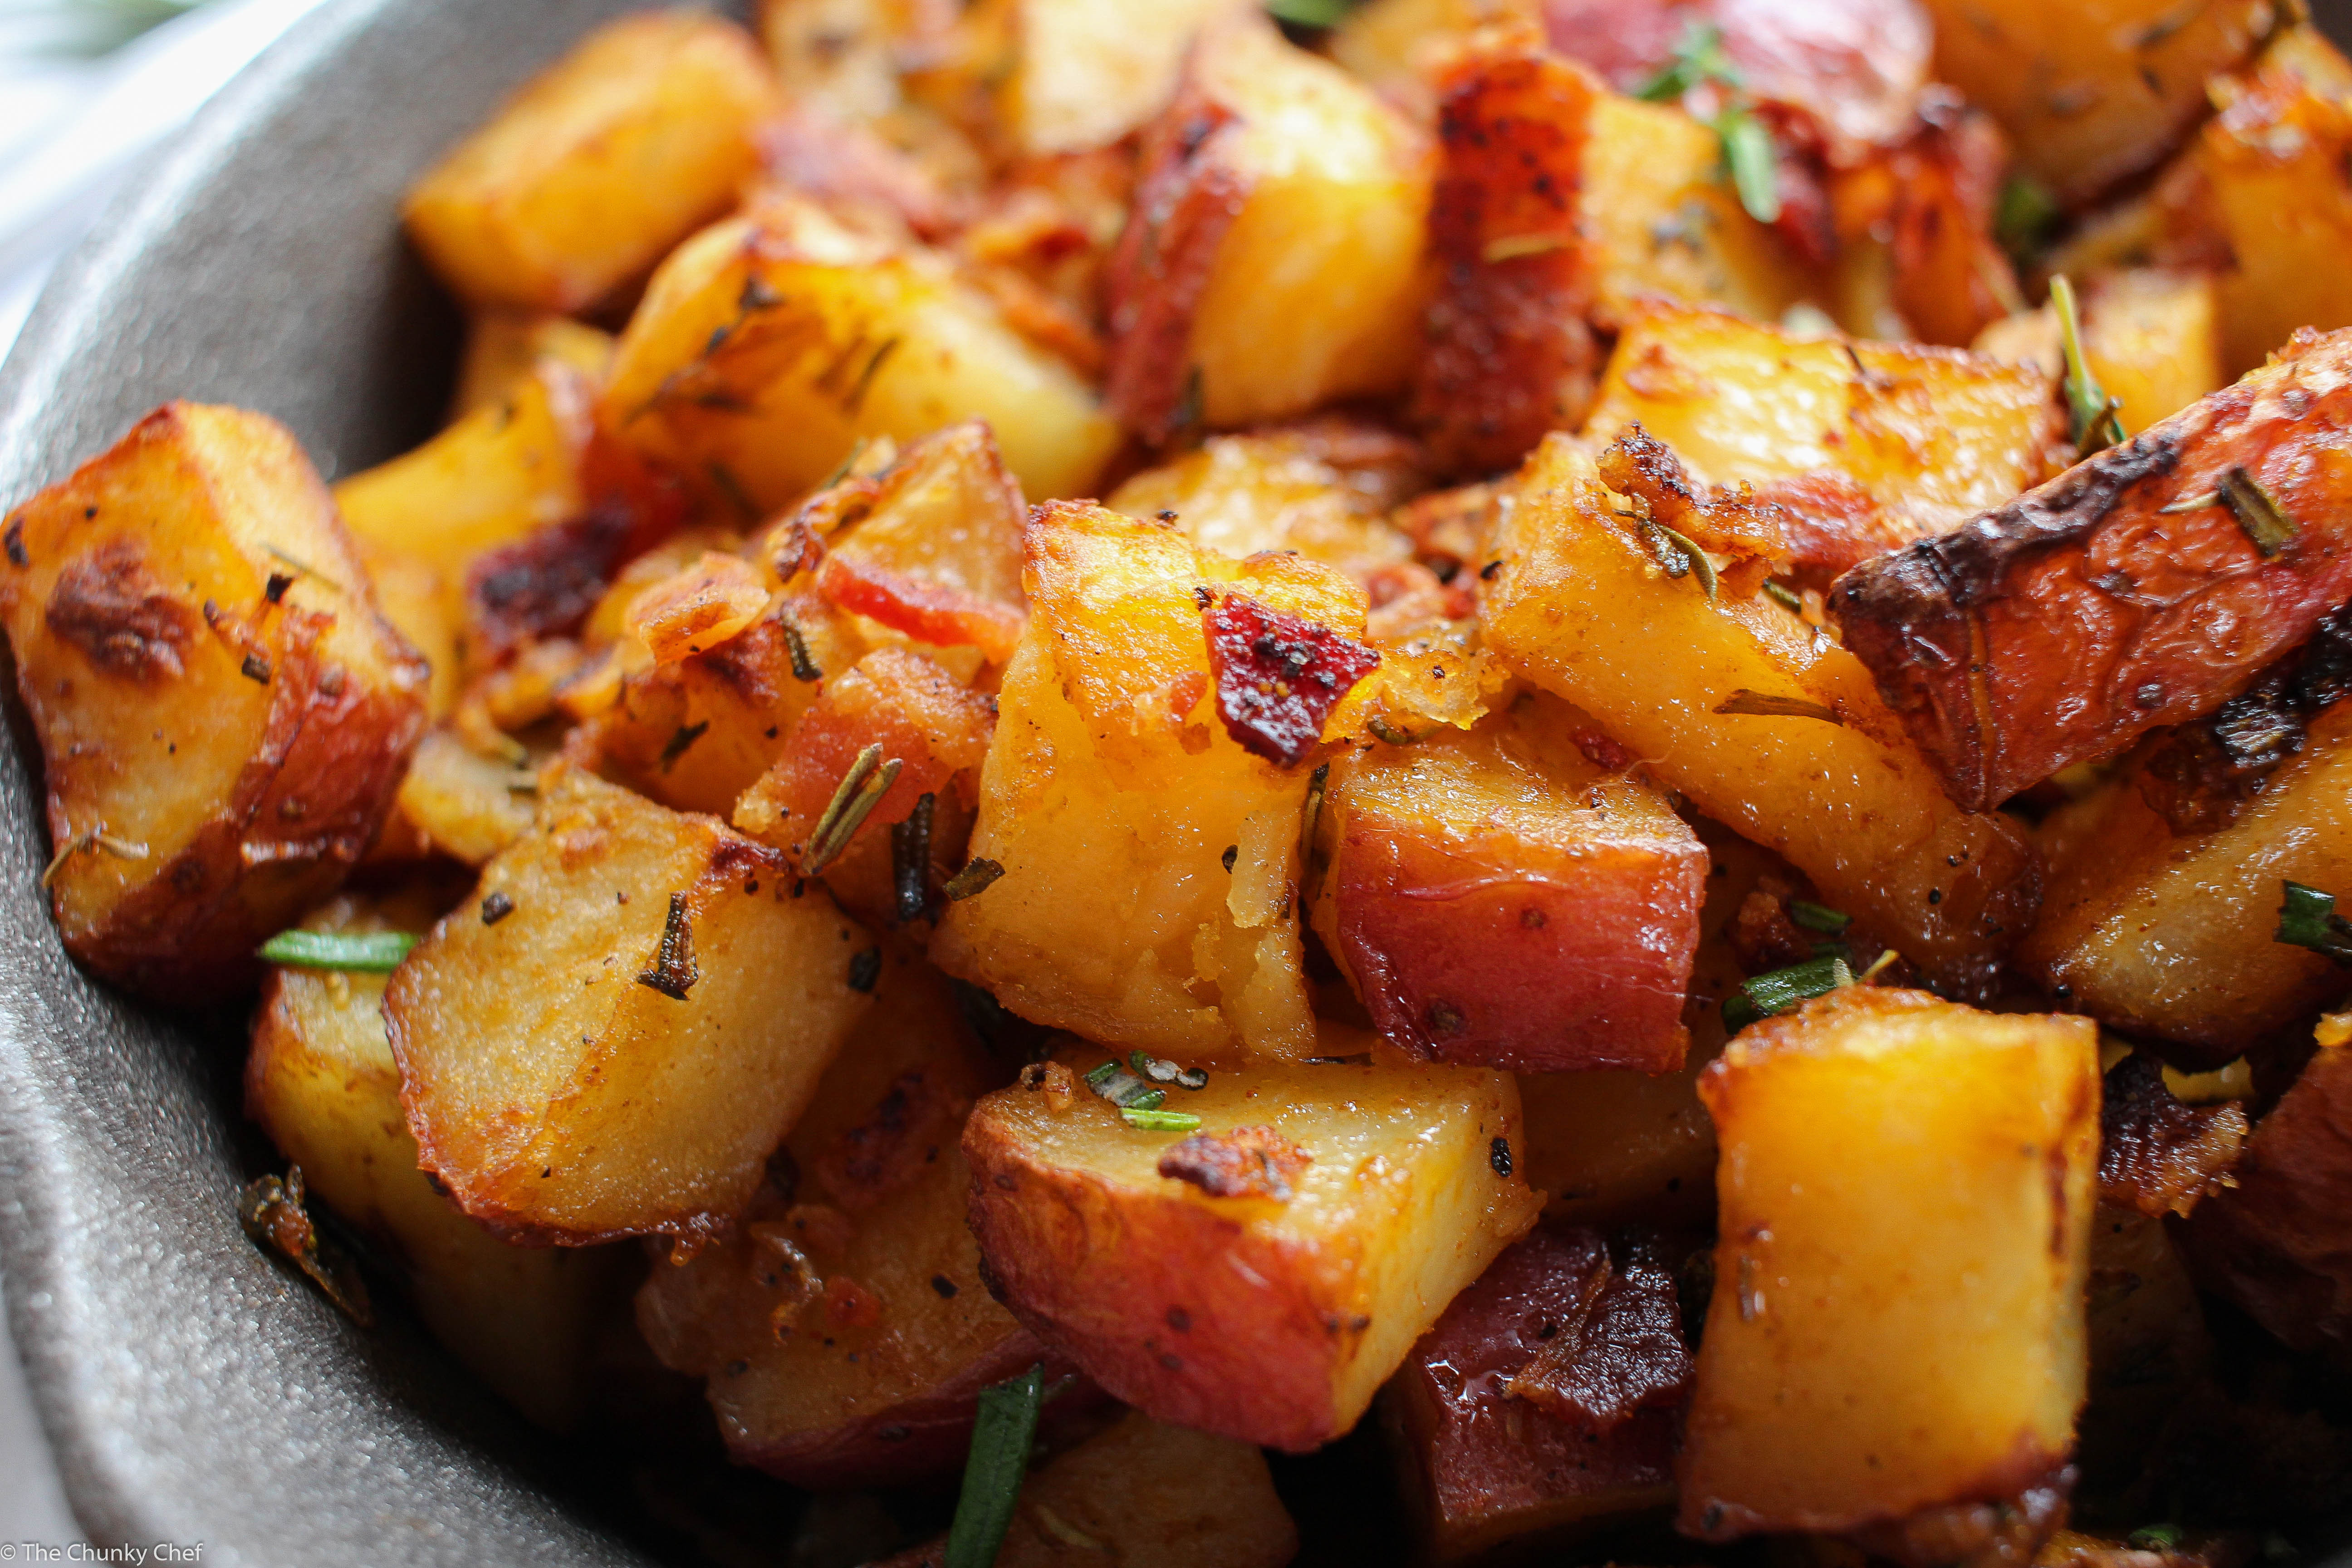 Diced Breakfast Potatoes  Oven Roasted Breakfast Potatoes The Chunky Chef